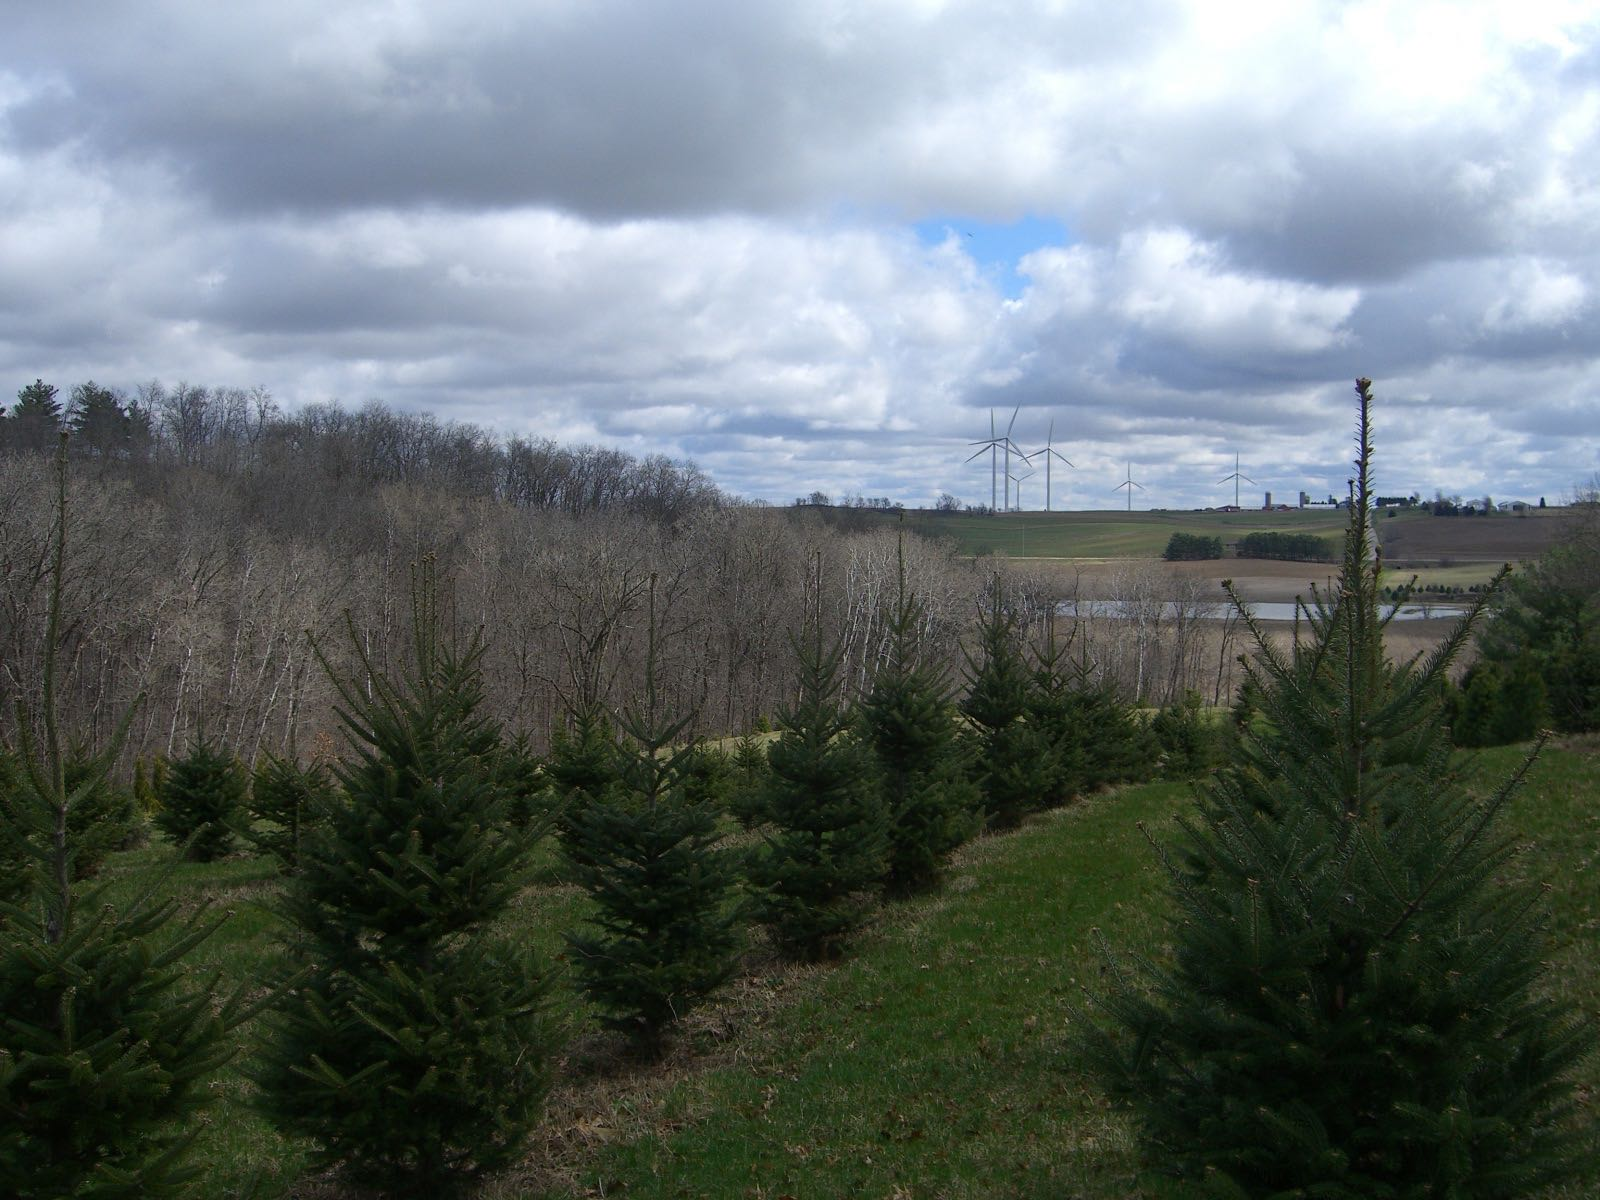 Christmas Trees at Docter Evergreens in Cross Plains, Wisconsin